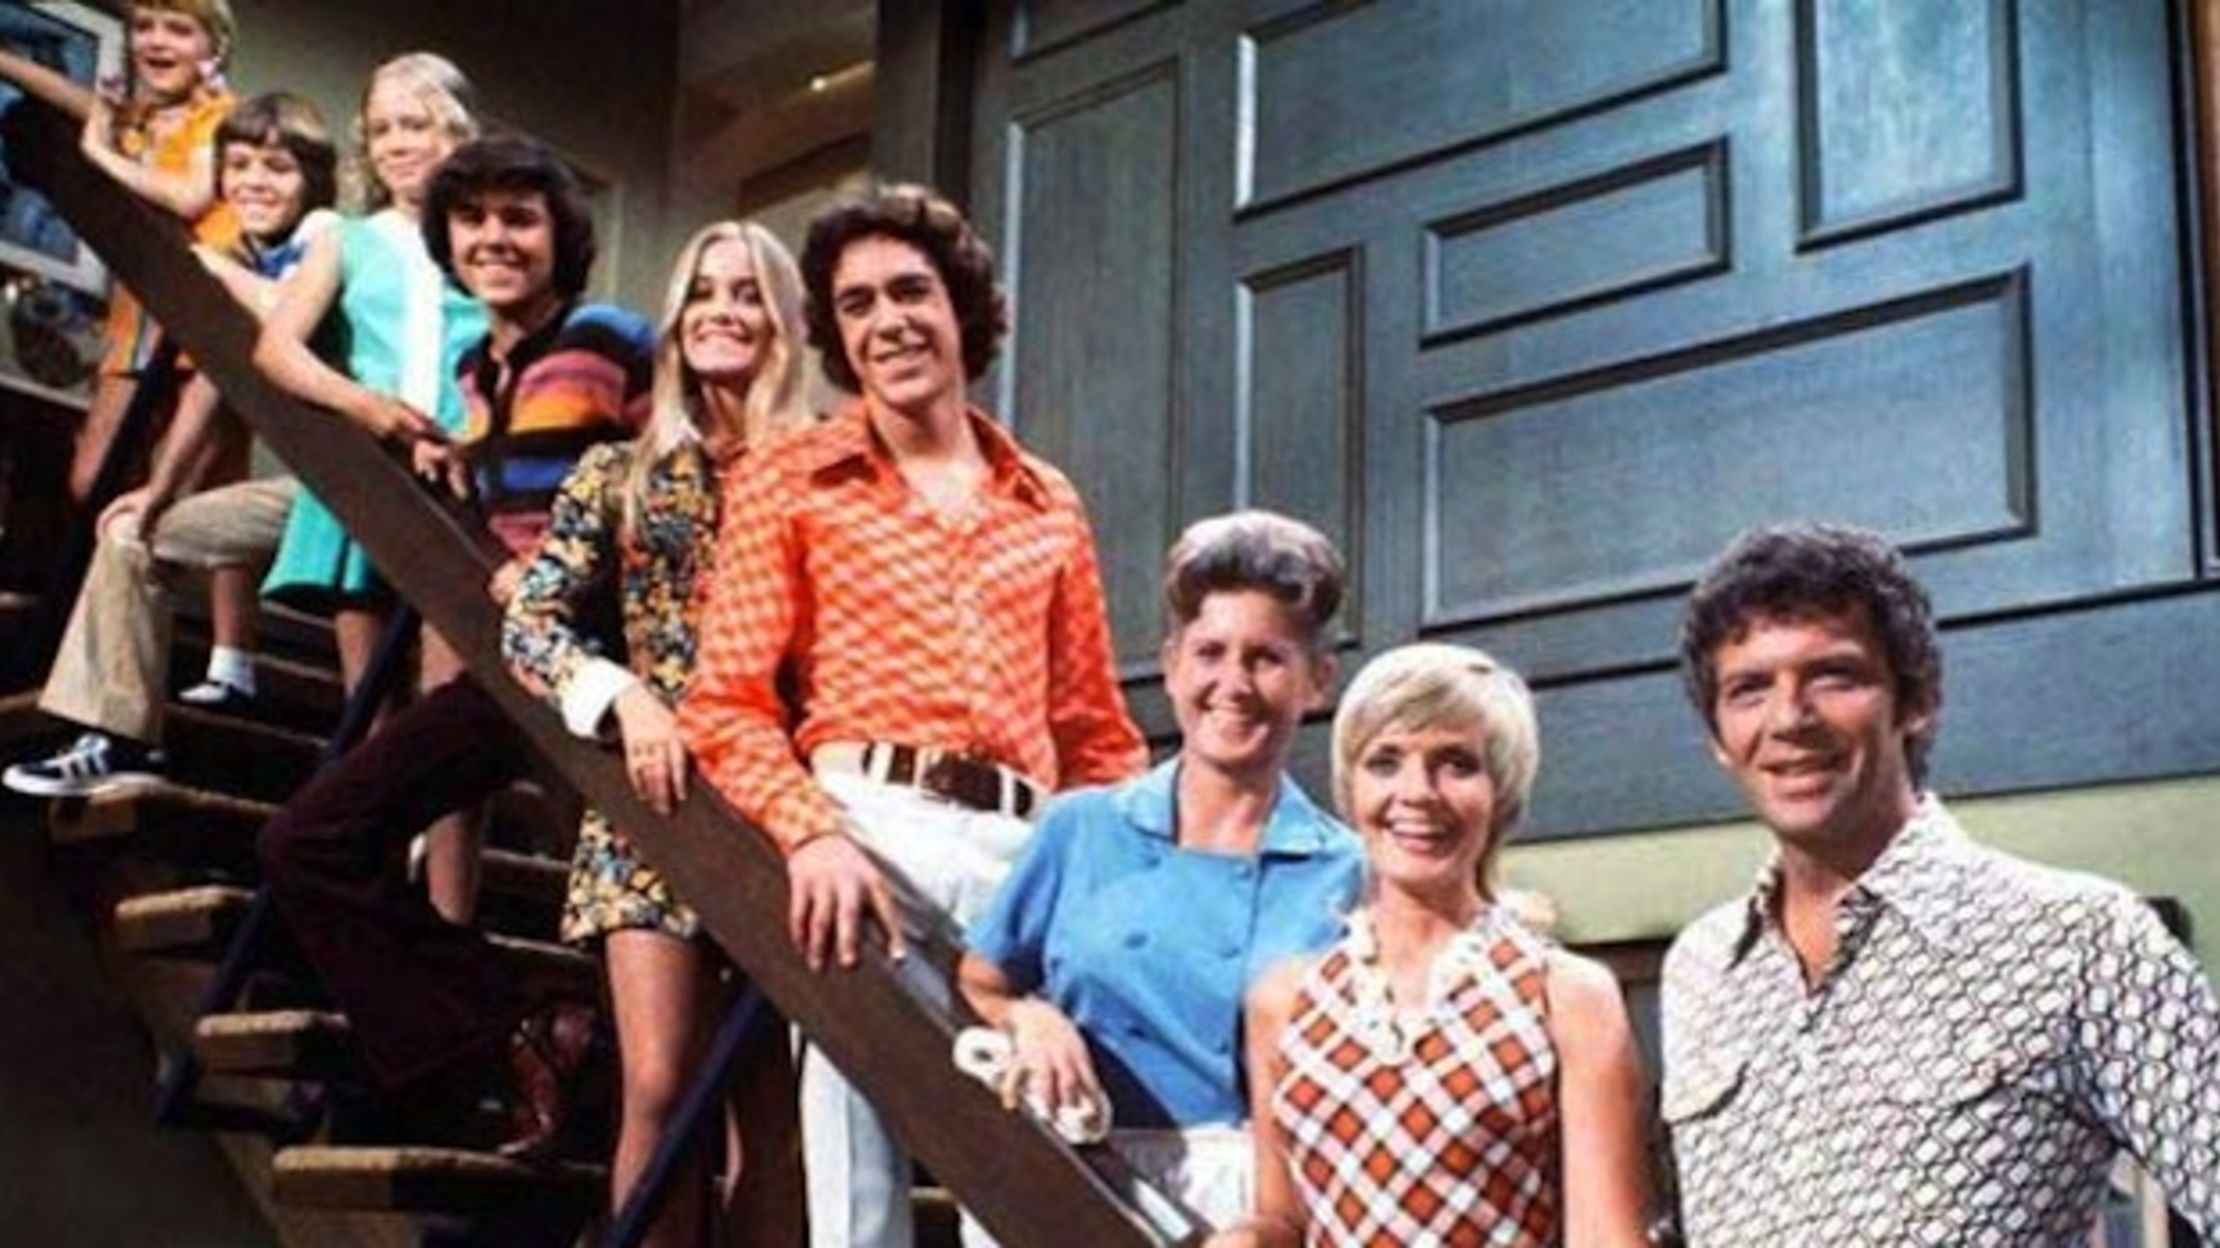 16 Things You Might Not Know About 'The Brady Bunch' | Mental Floss